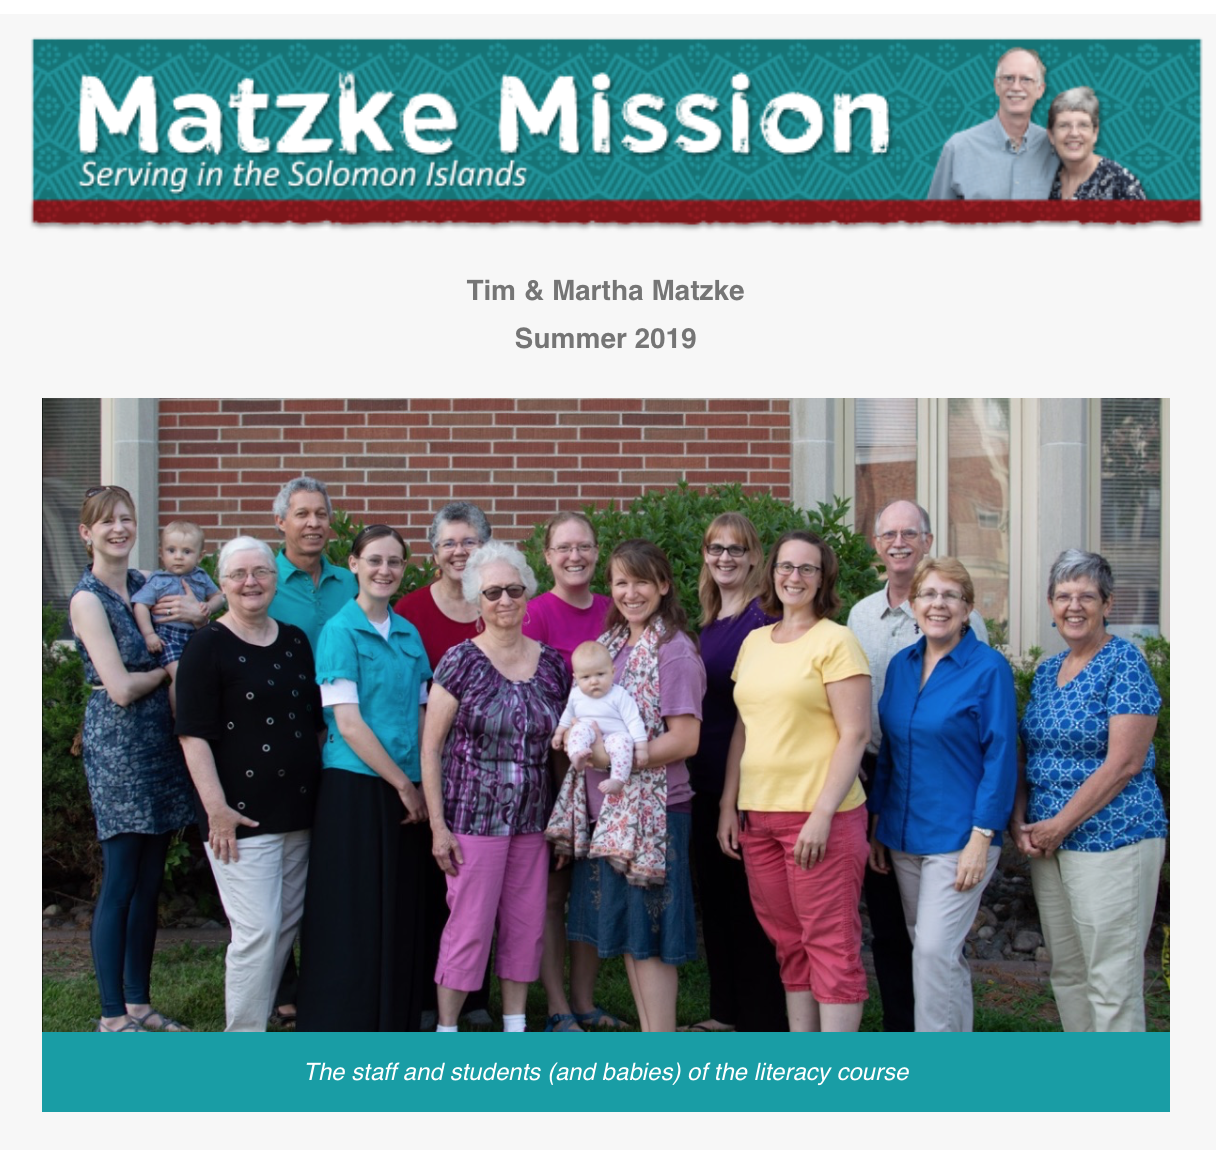 Matzke Mission – Summer 2019